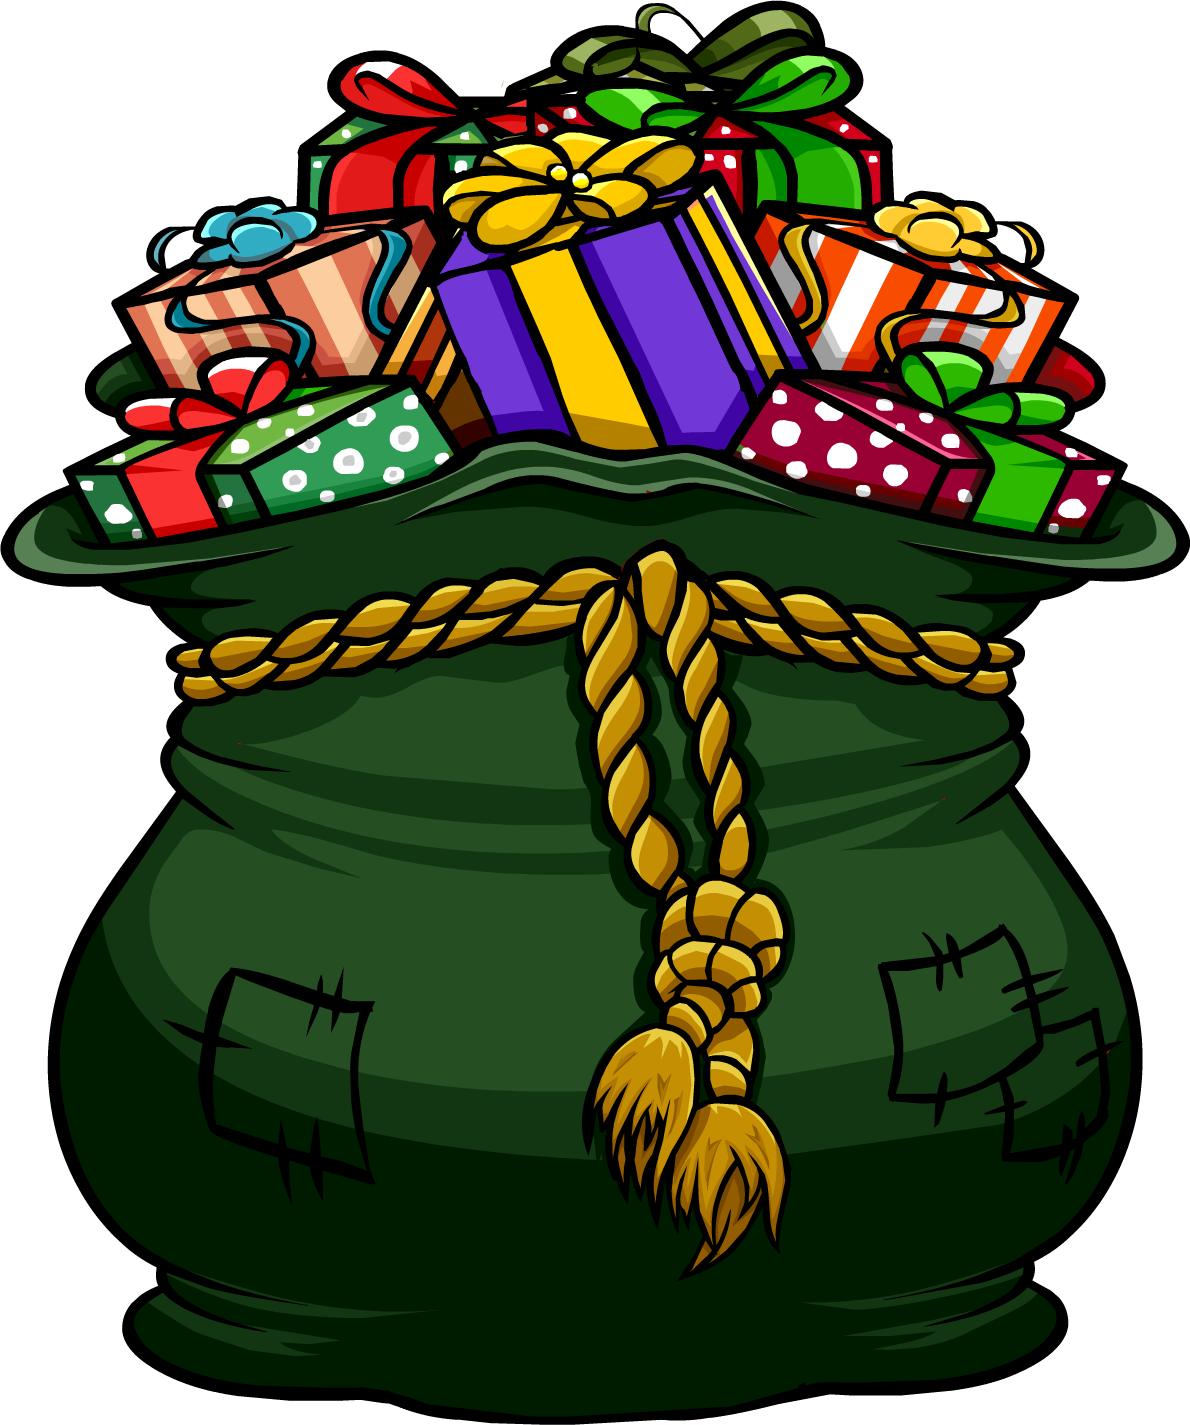 Marbles clipart sack. Supreme toy club penguin